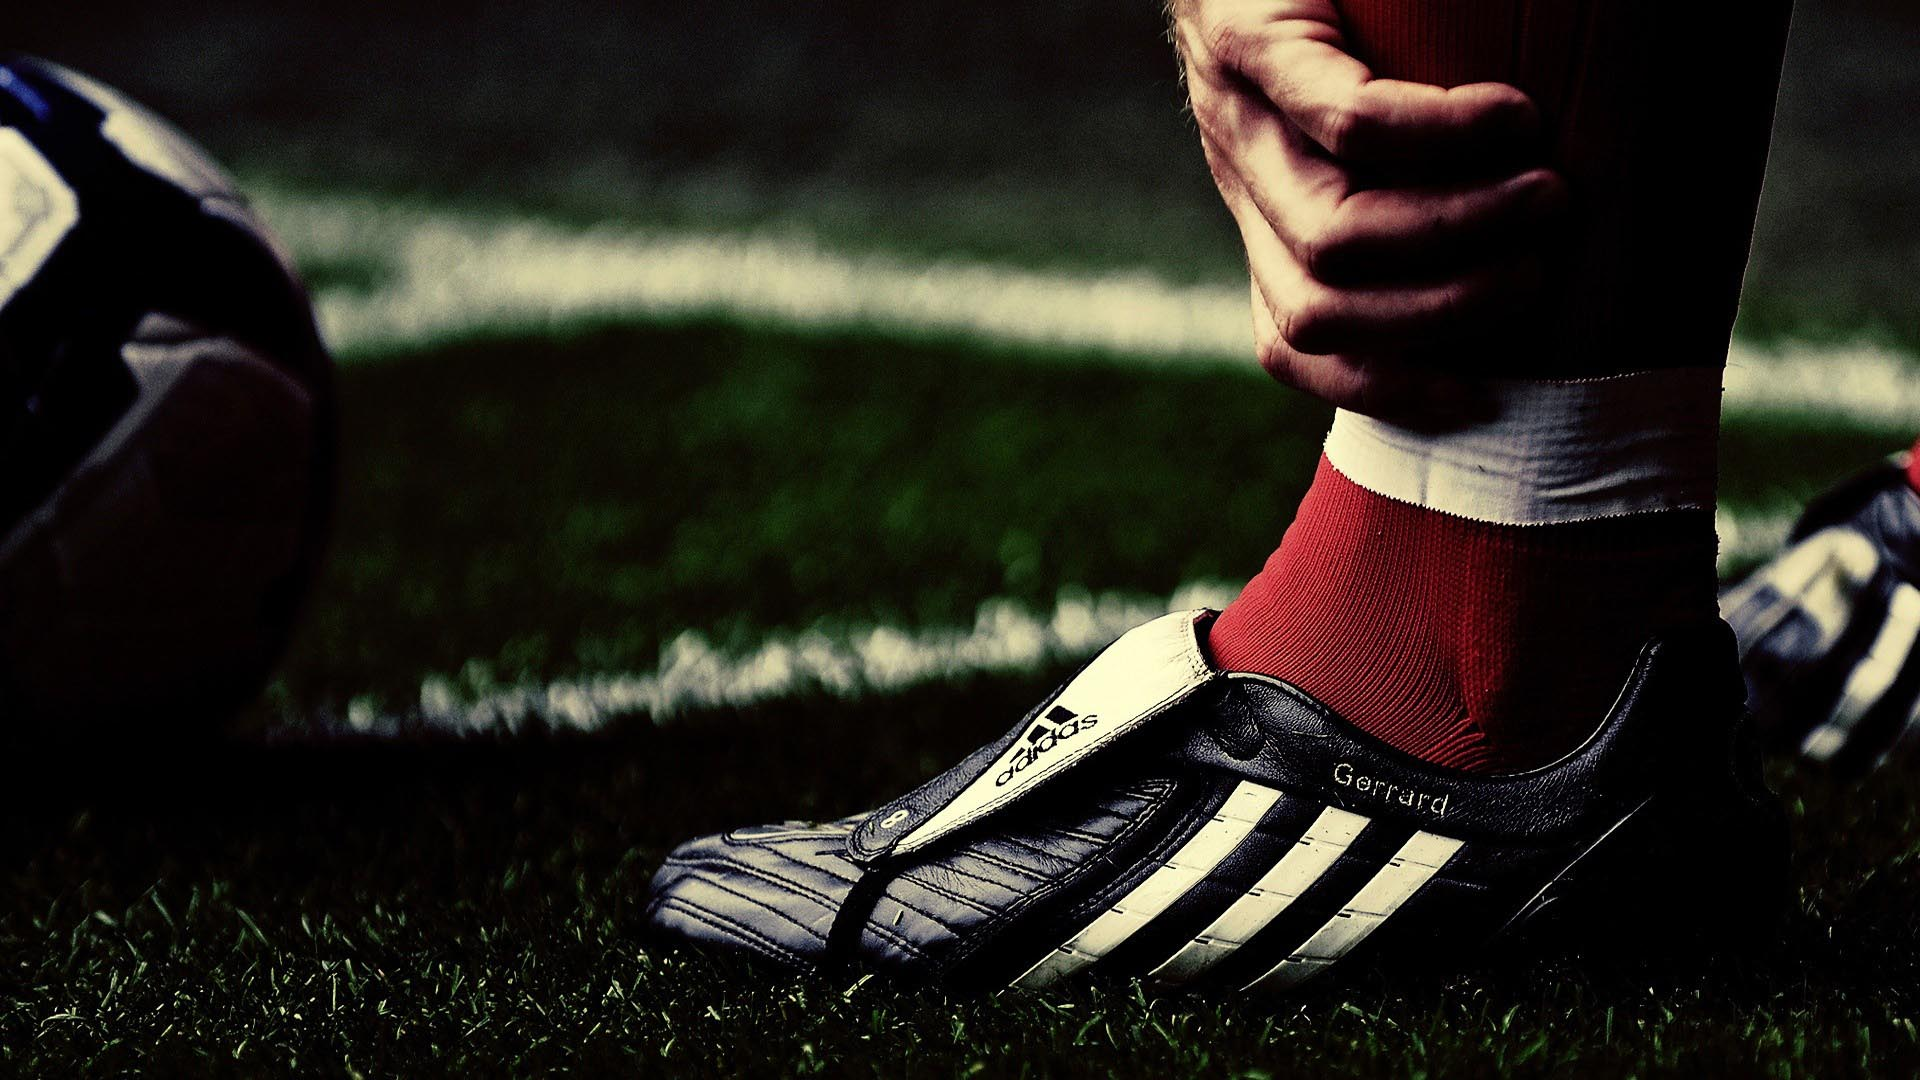 wallpaper.wiki-Gerrard-Adidas-Shoes-Soccer-Wallpaper-PIC-WPC0014218